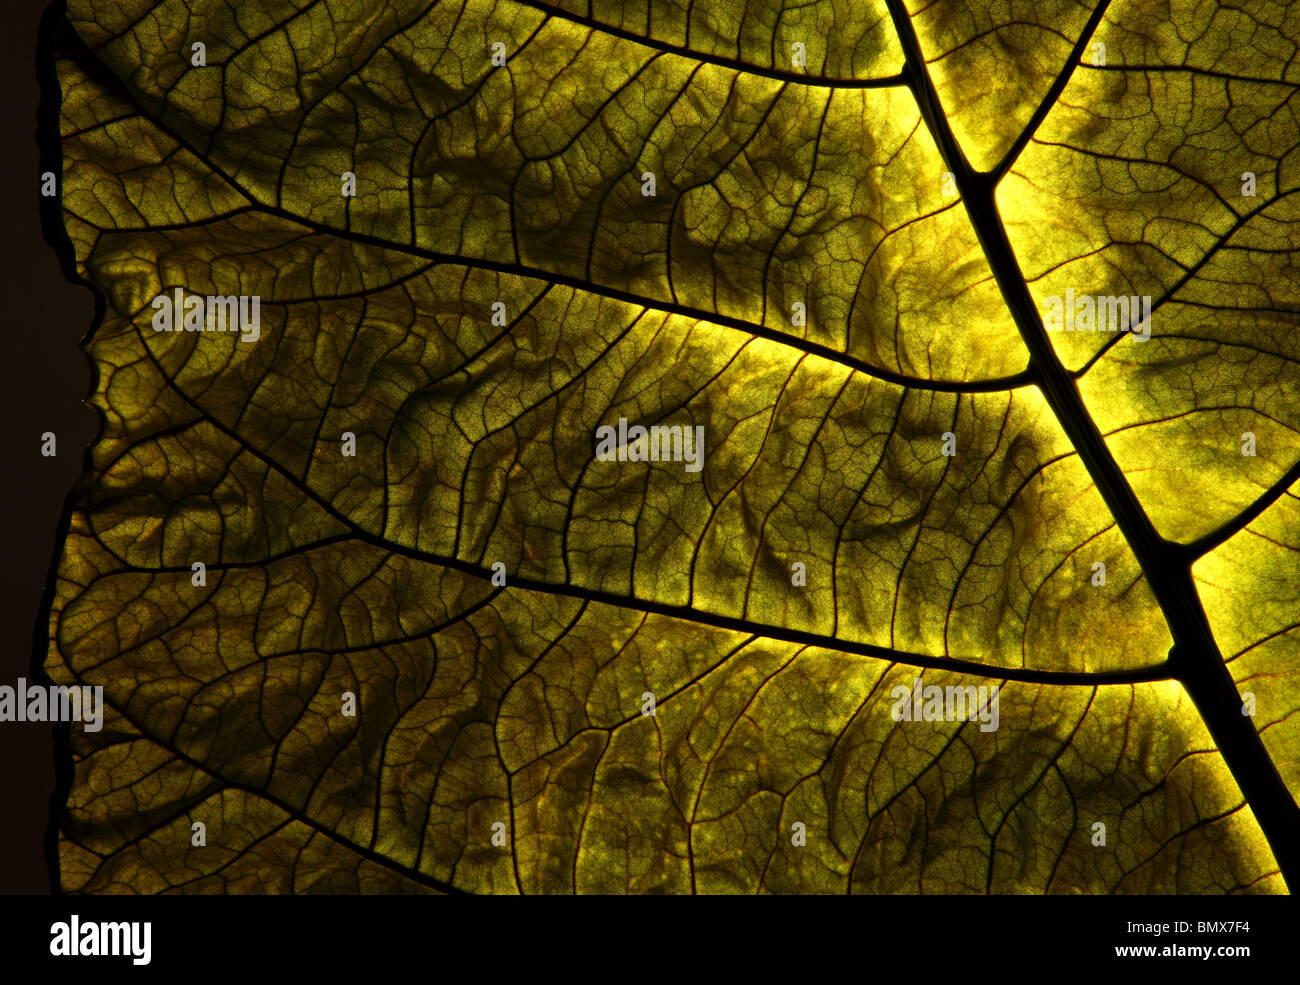 A single green plant leaf, black background - Stock Image